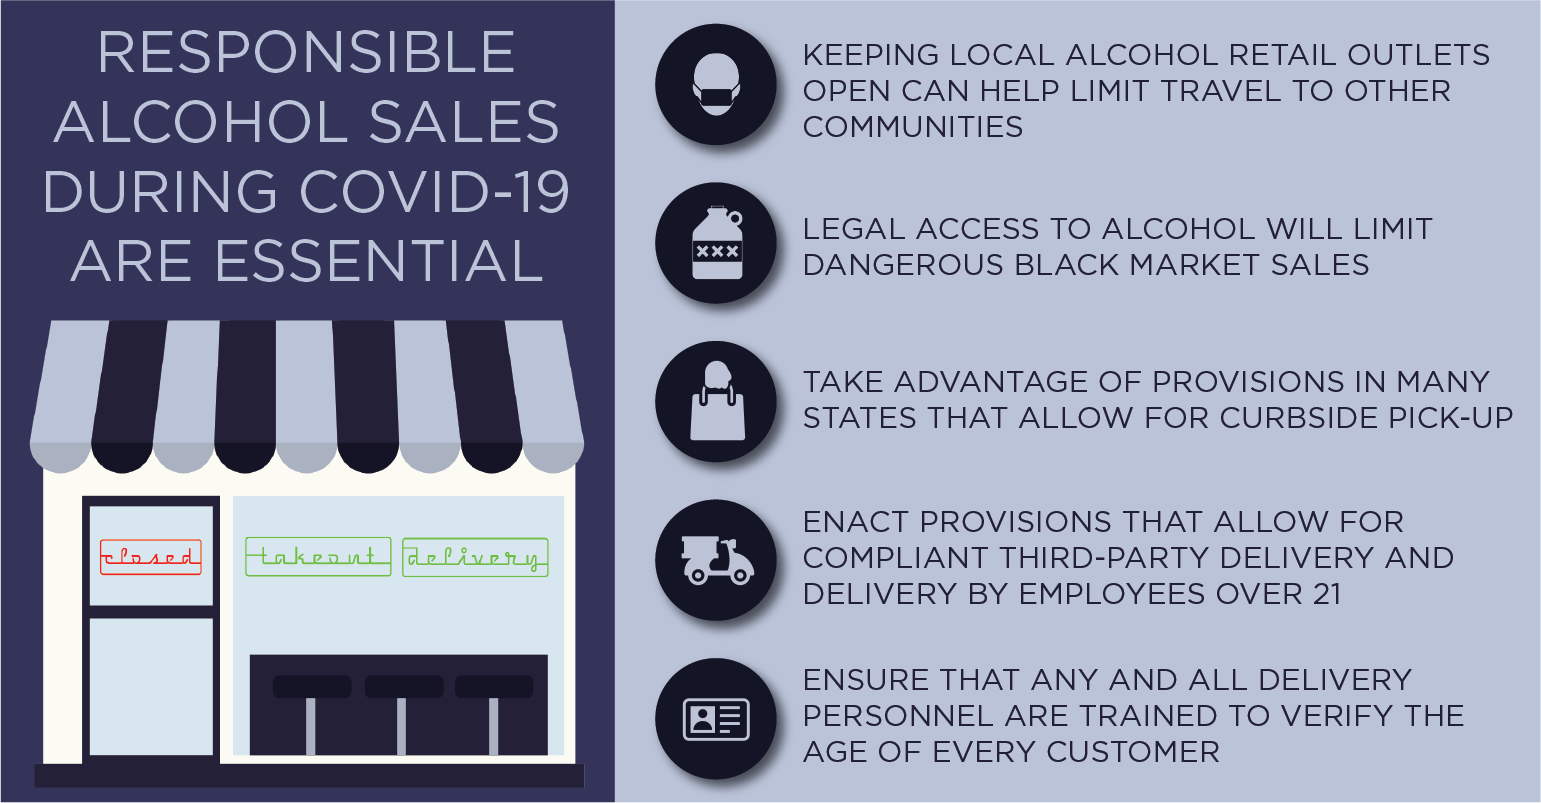 Responsible Alcohol Sales During COVID-19 Are Essential Infographic